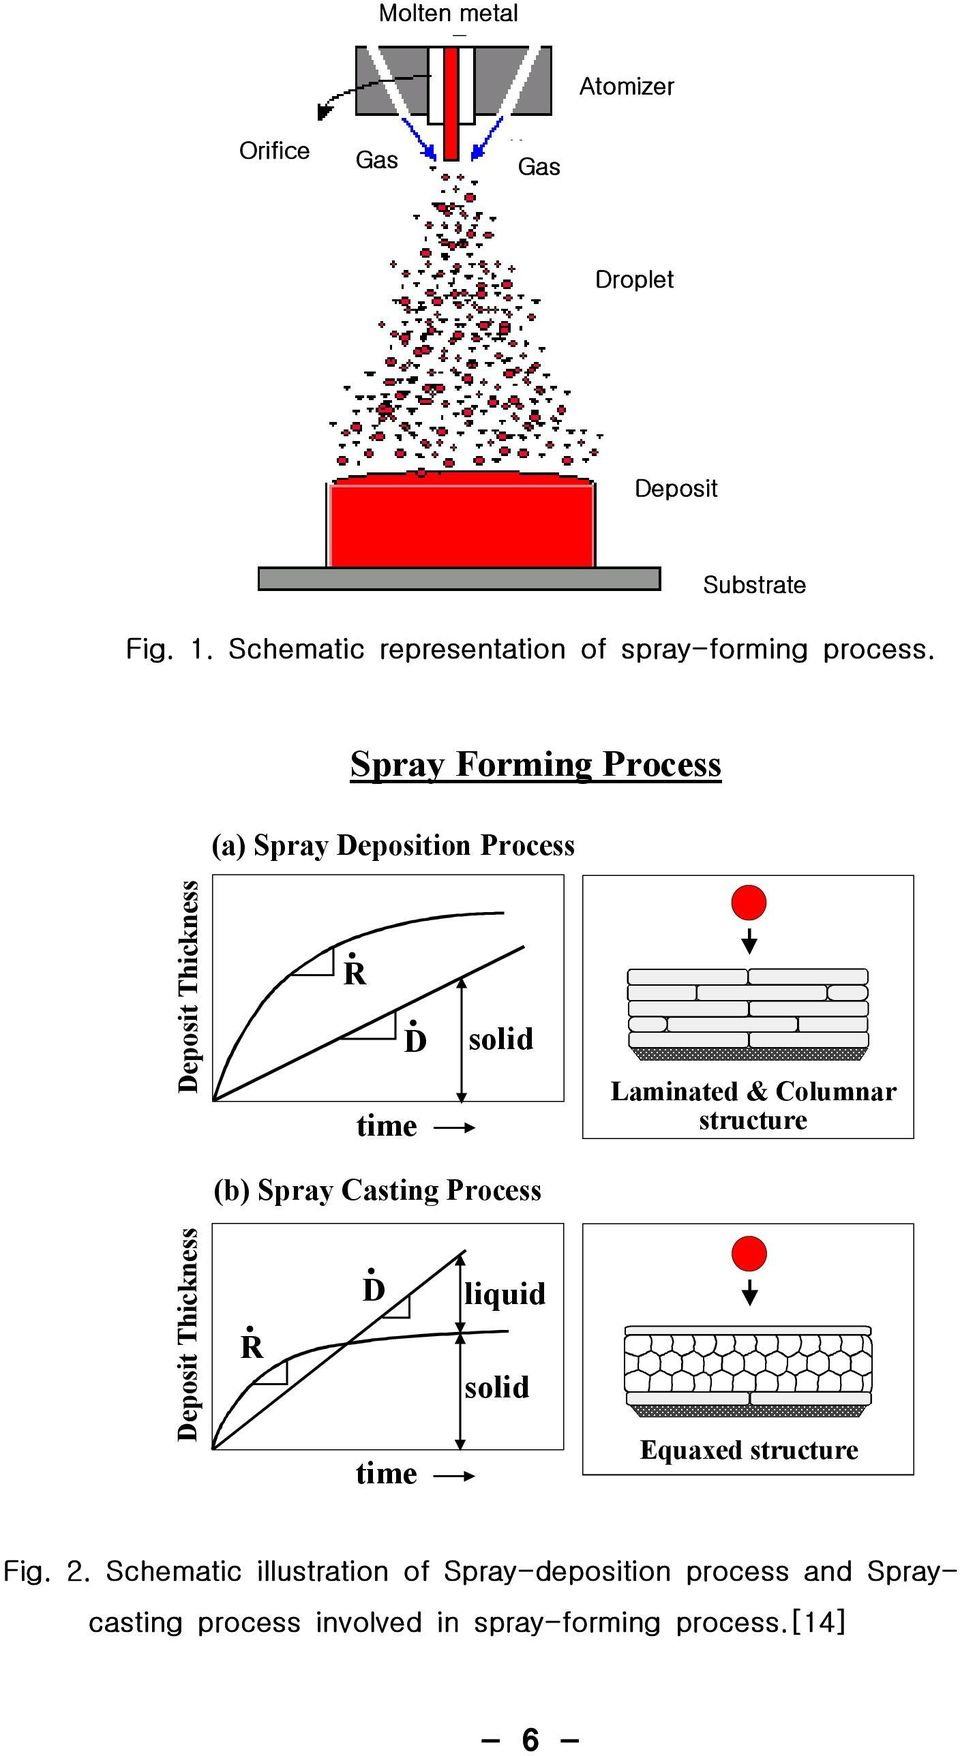 Spray Forming Process (a) Spray Deposition Process Deposit Thickness R D time solid Laminated & Columnar